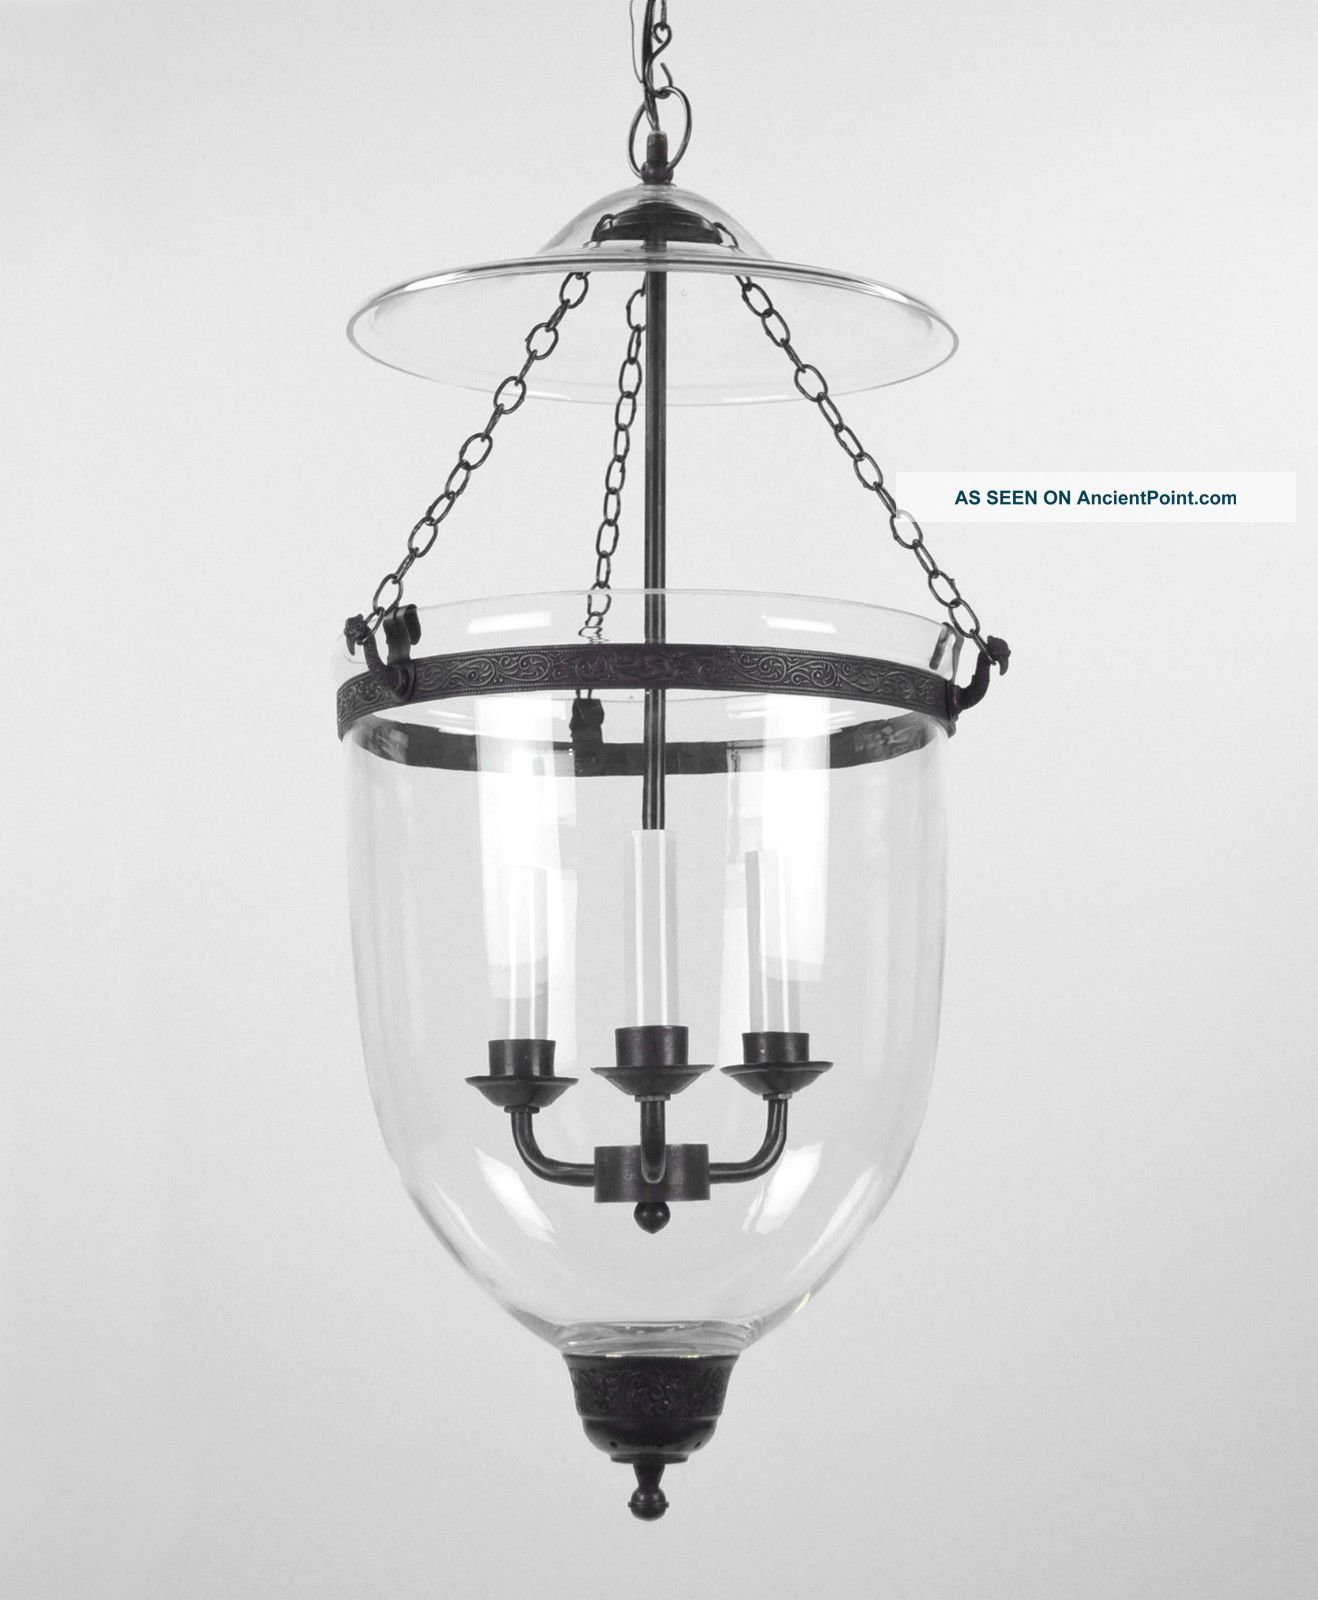 Large Bell Jar Light Chandelier Pendant Lantern Glass Colonial Old Antique Style Chandeliers Lantern Pendant Lighting Jar Pendant Light Pendant Light Fixtures